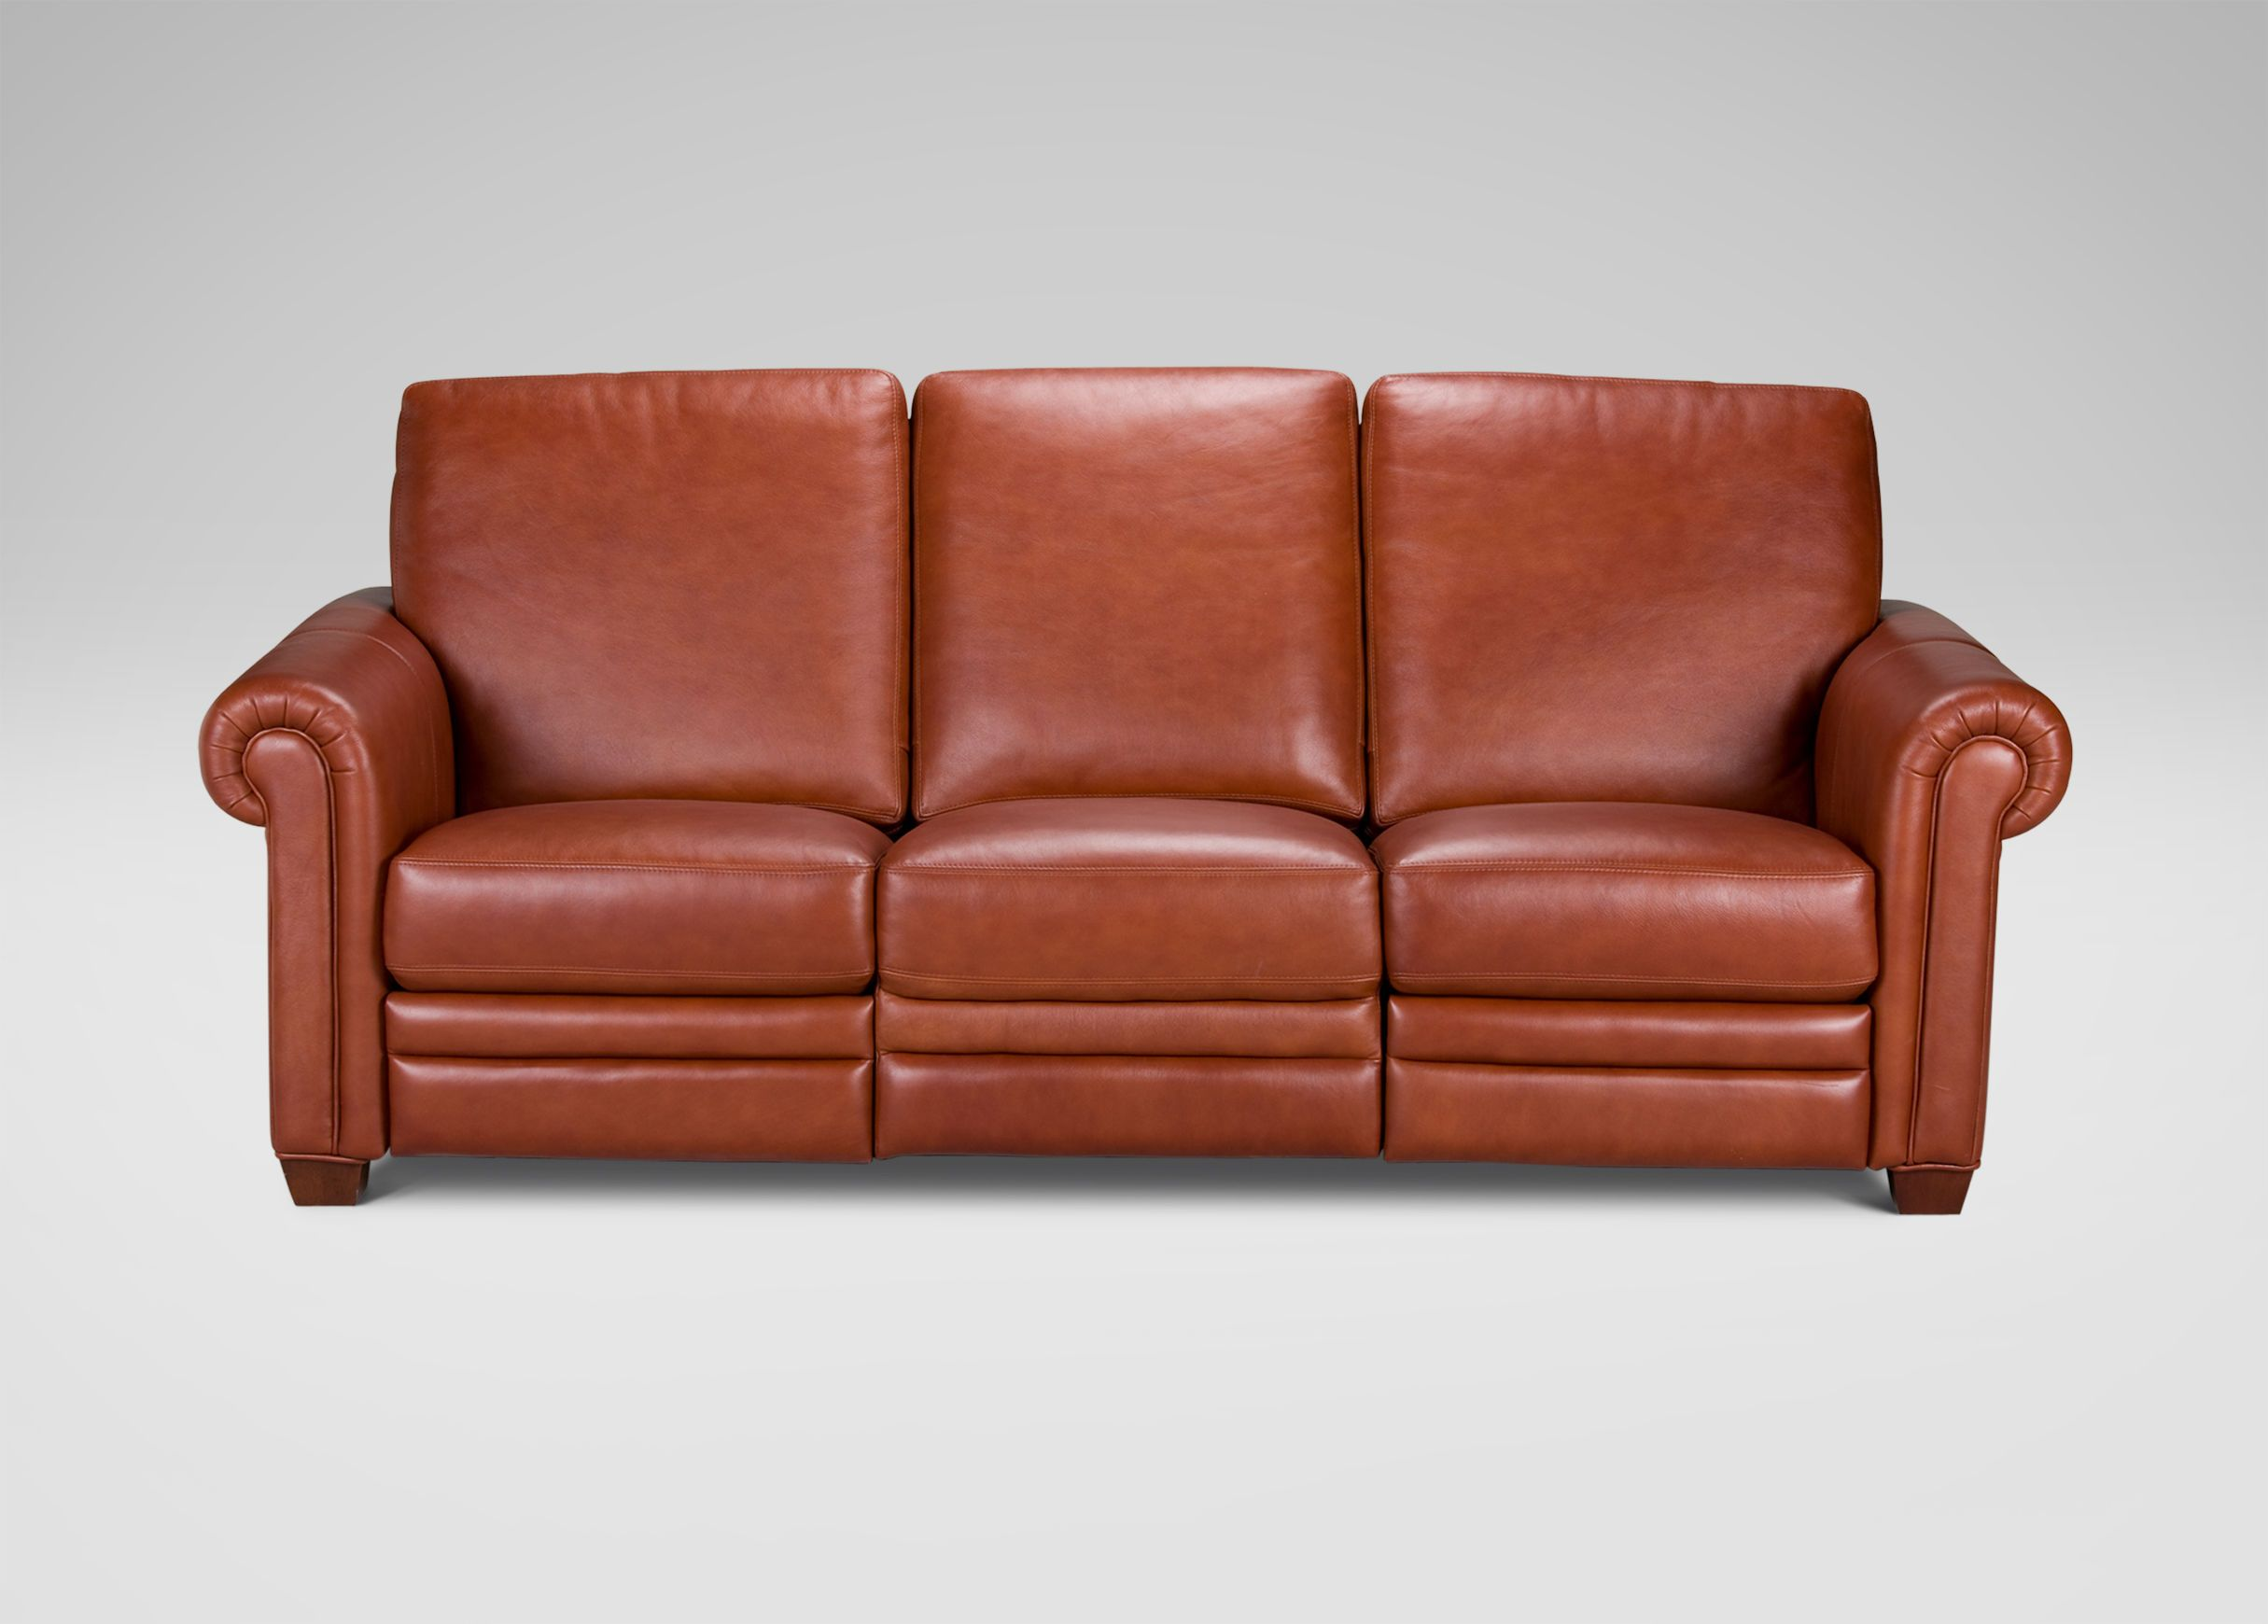 Recliner Sofa Ethan Allen Conor Leather Incliner Ethan Allen Like This One Home In